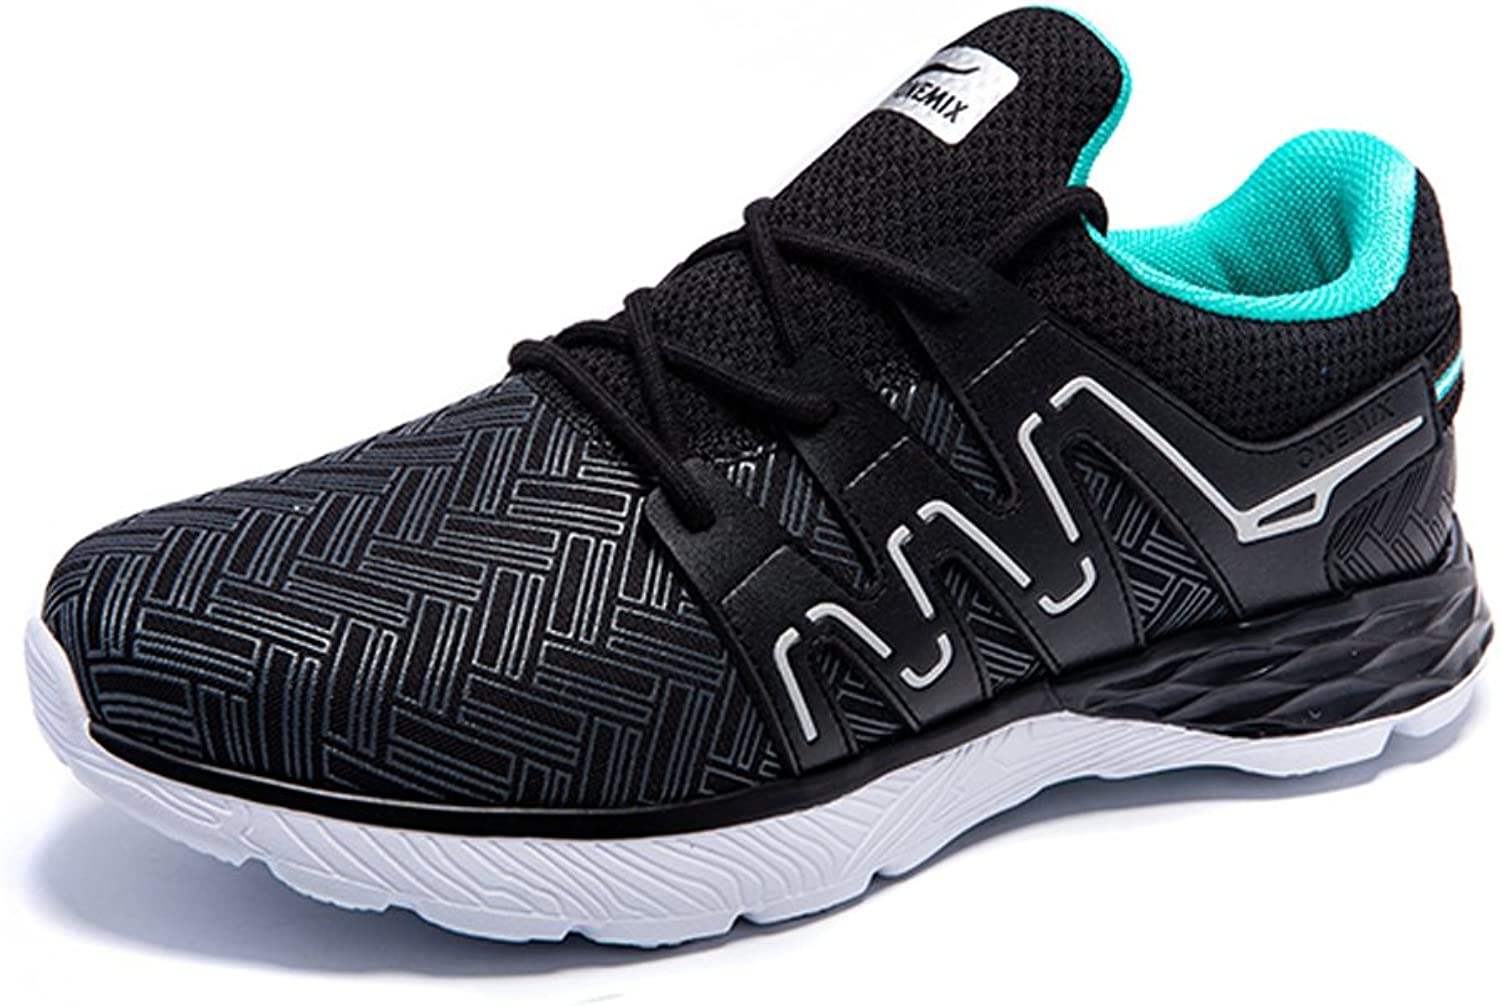 Men's Lightweight Sports Running Sneakers Daily Casual shoes